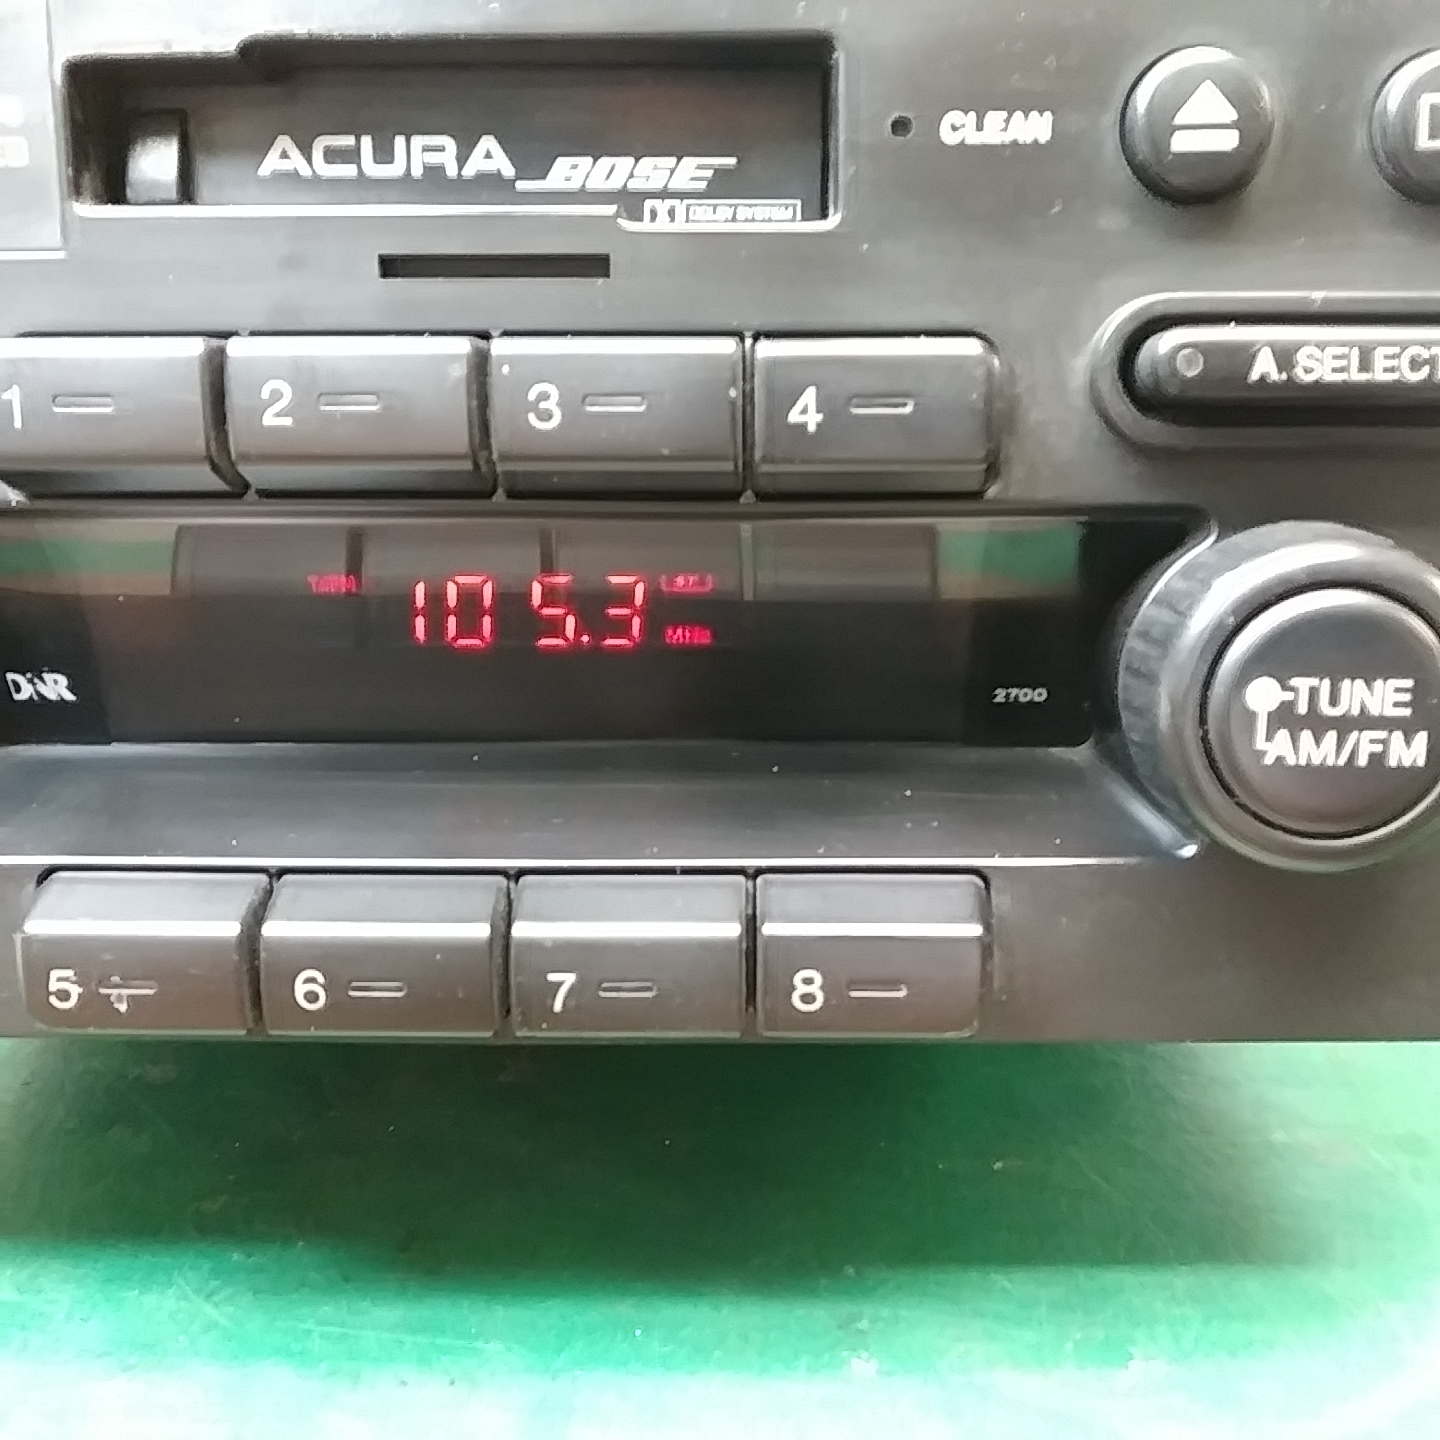 Acura NSX Bose Stereo Upgrade Red Display